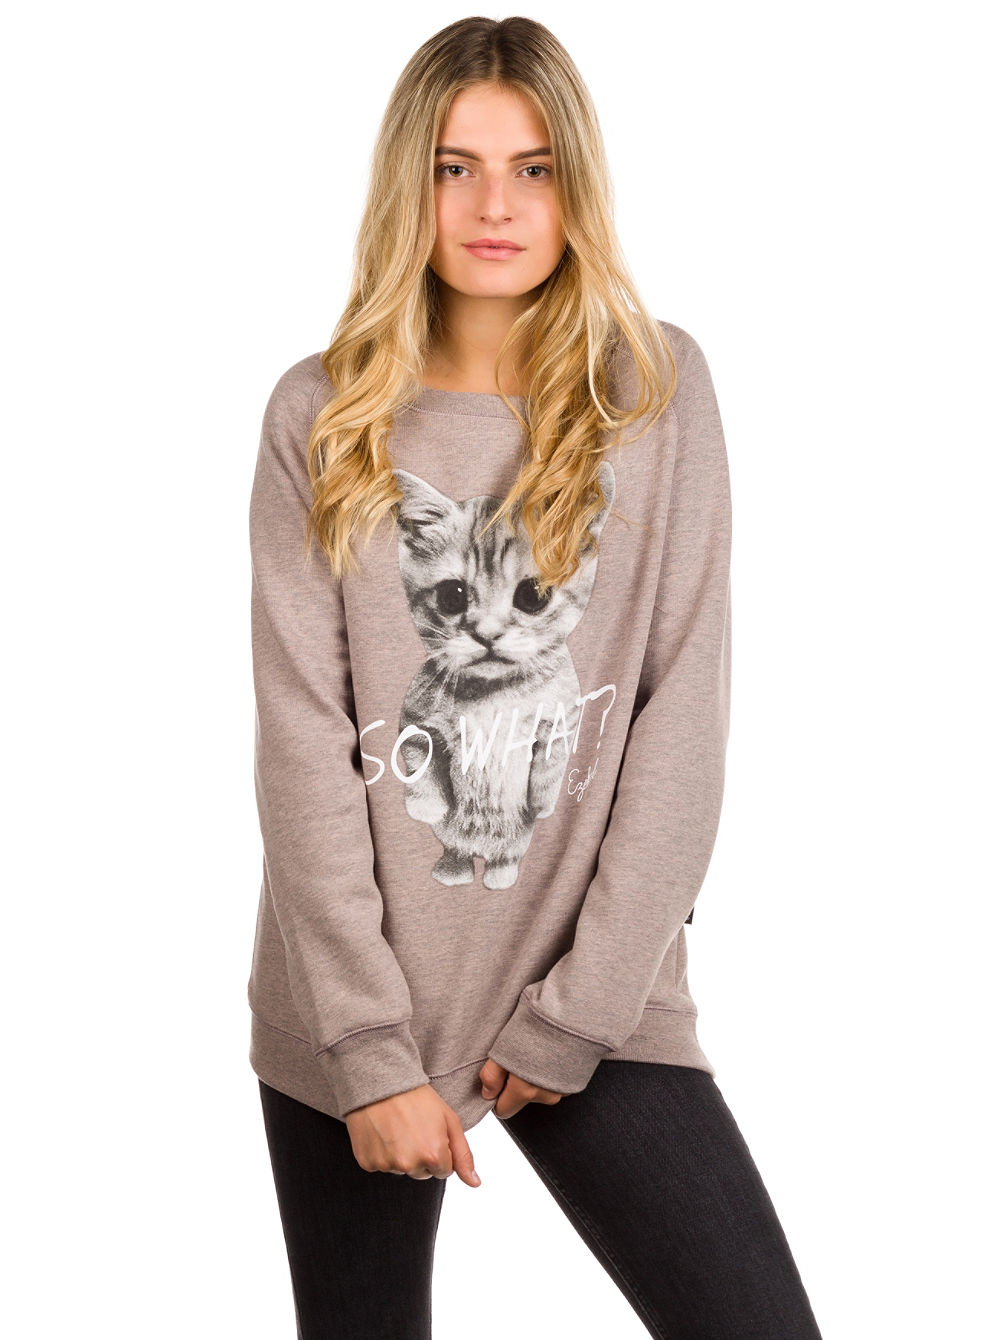 So What Loose Fit Crewneck Sweater